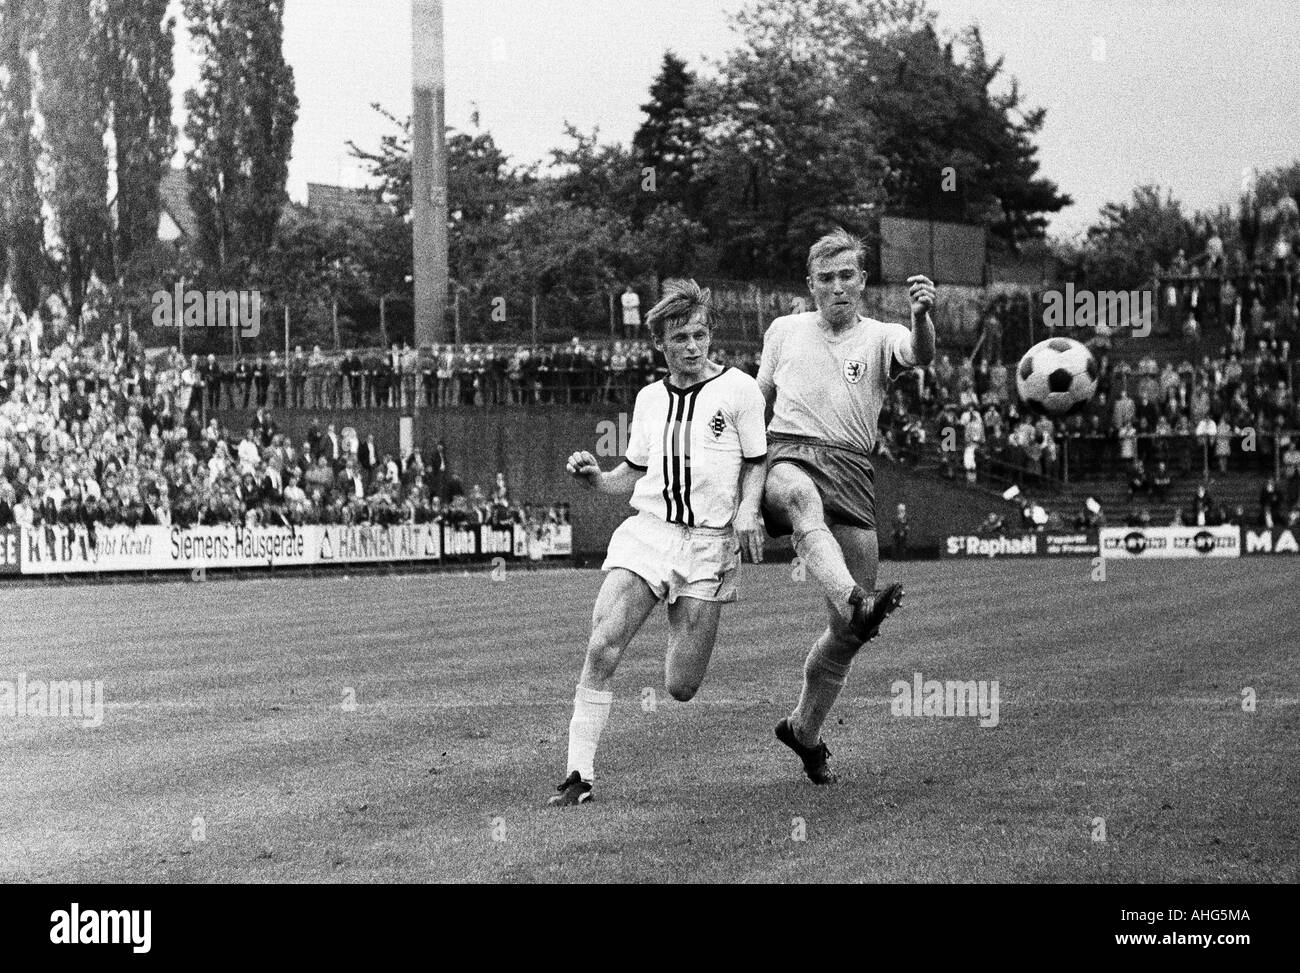 football, Bundesliga, 1968/1969, Boekelberg Stadium, Borussia Moenchengladbach versus Eintracht Brunswick 1:1, scene of the match, duel between Klaus Ackermann (Gladbach) left and Peter Kaack (Braunschweig) - Stock Image